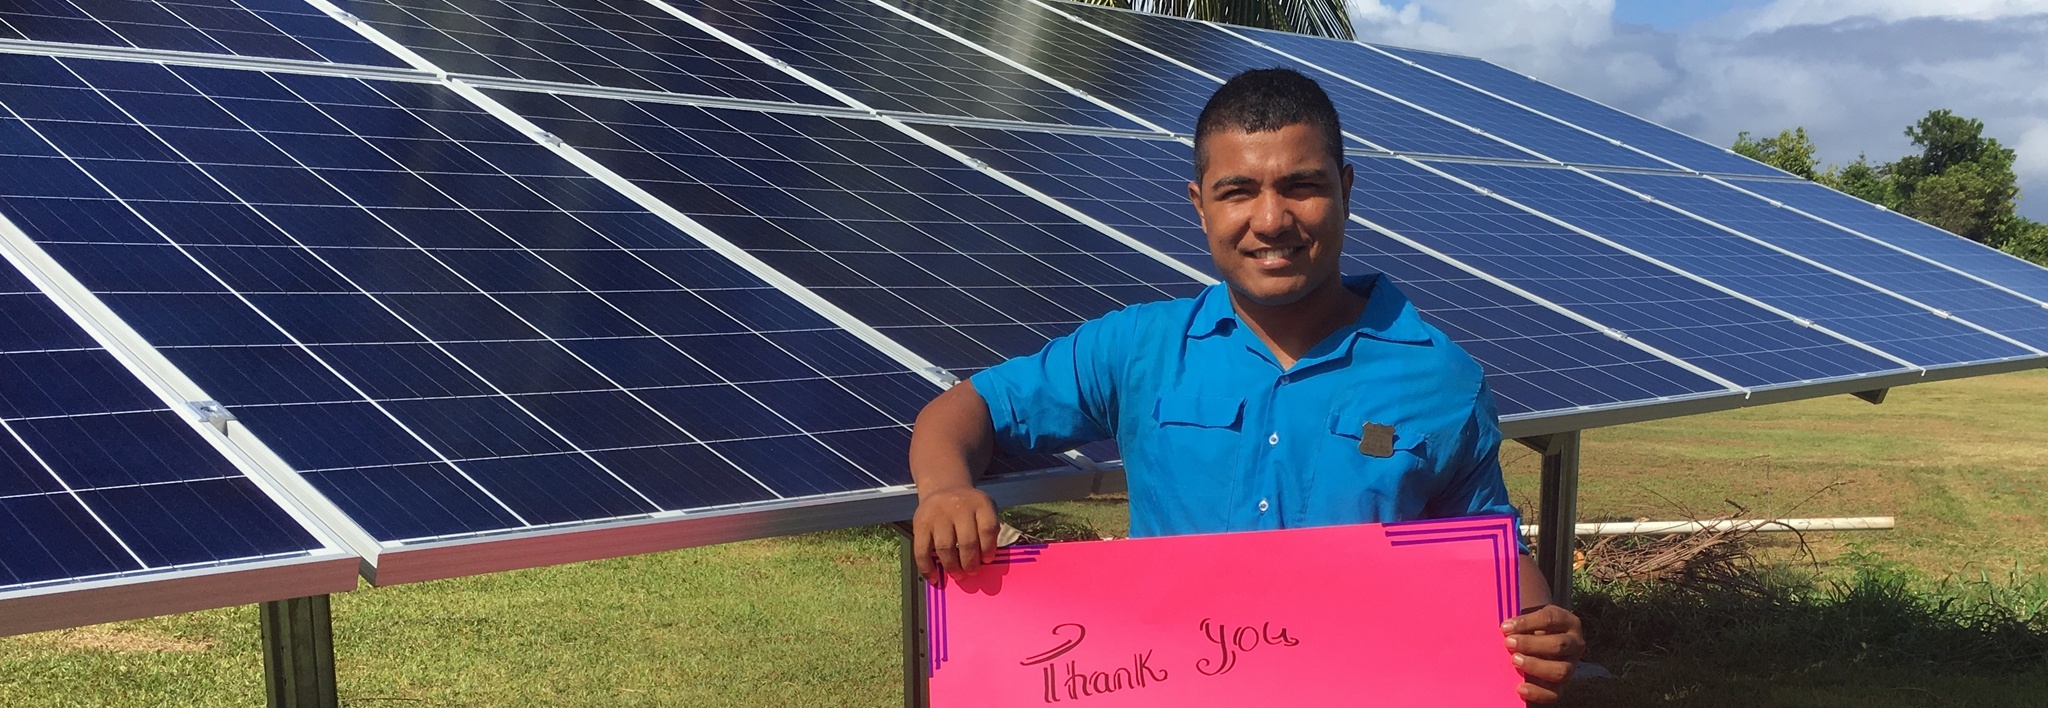 Clenergy PV-ezRack Mounting Systems Installed in School Buildings in Remote Fiji 2018